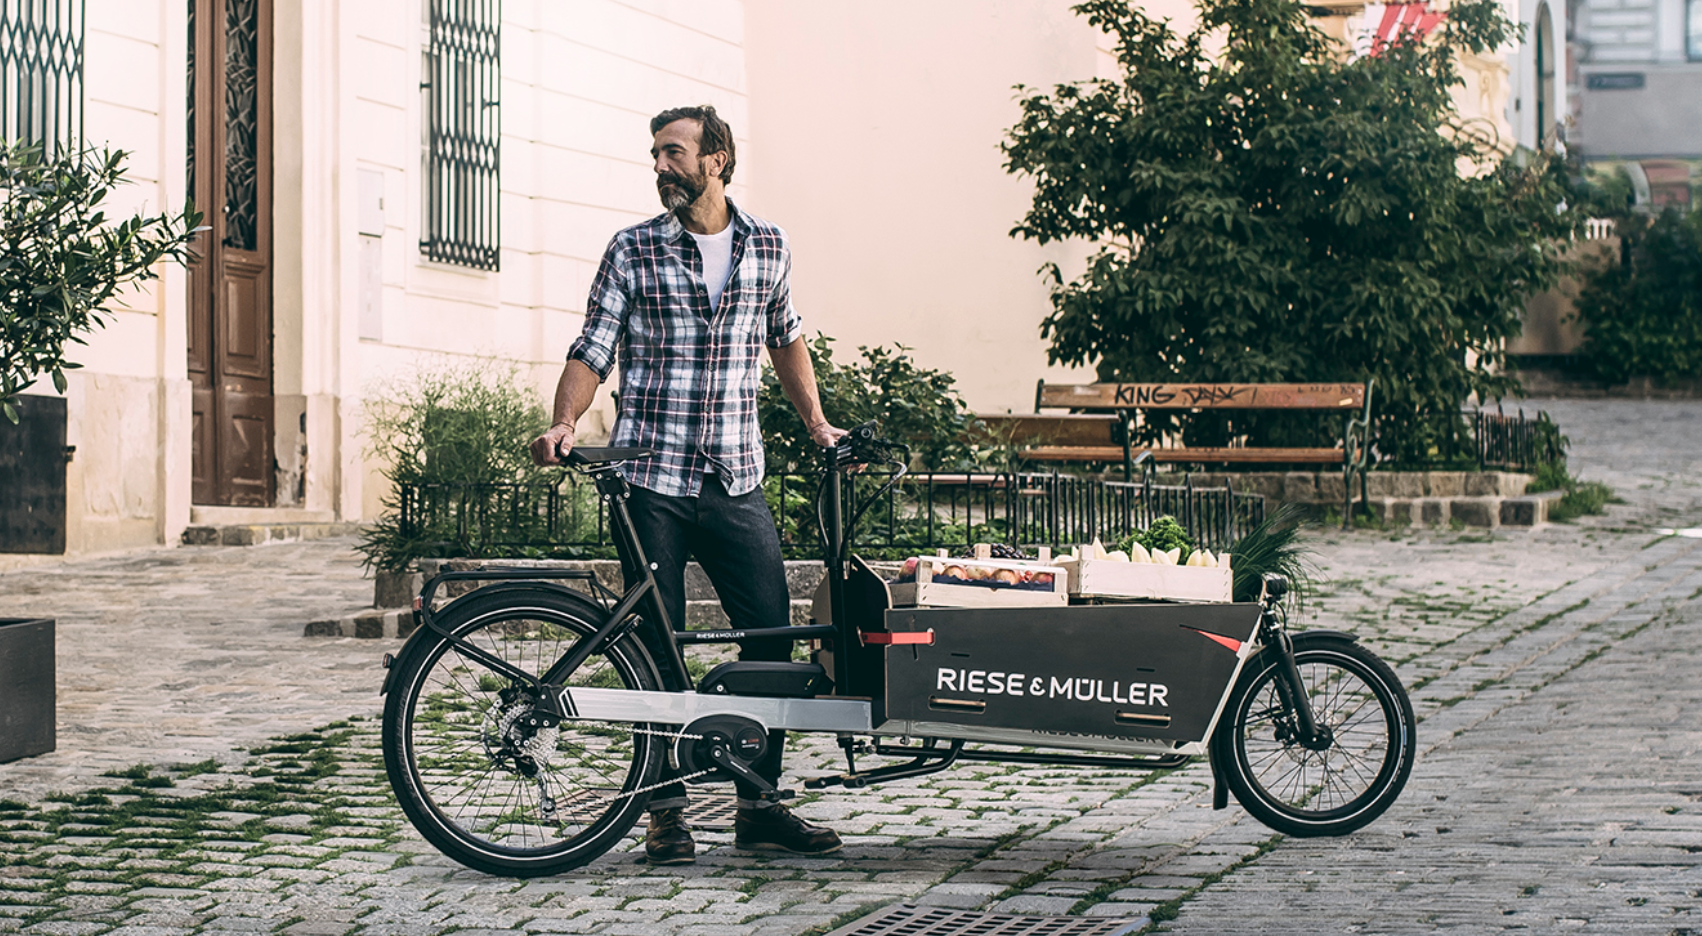 2019 Riese & Müller Packster 80 Collection